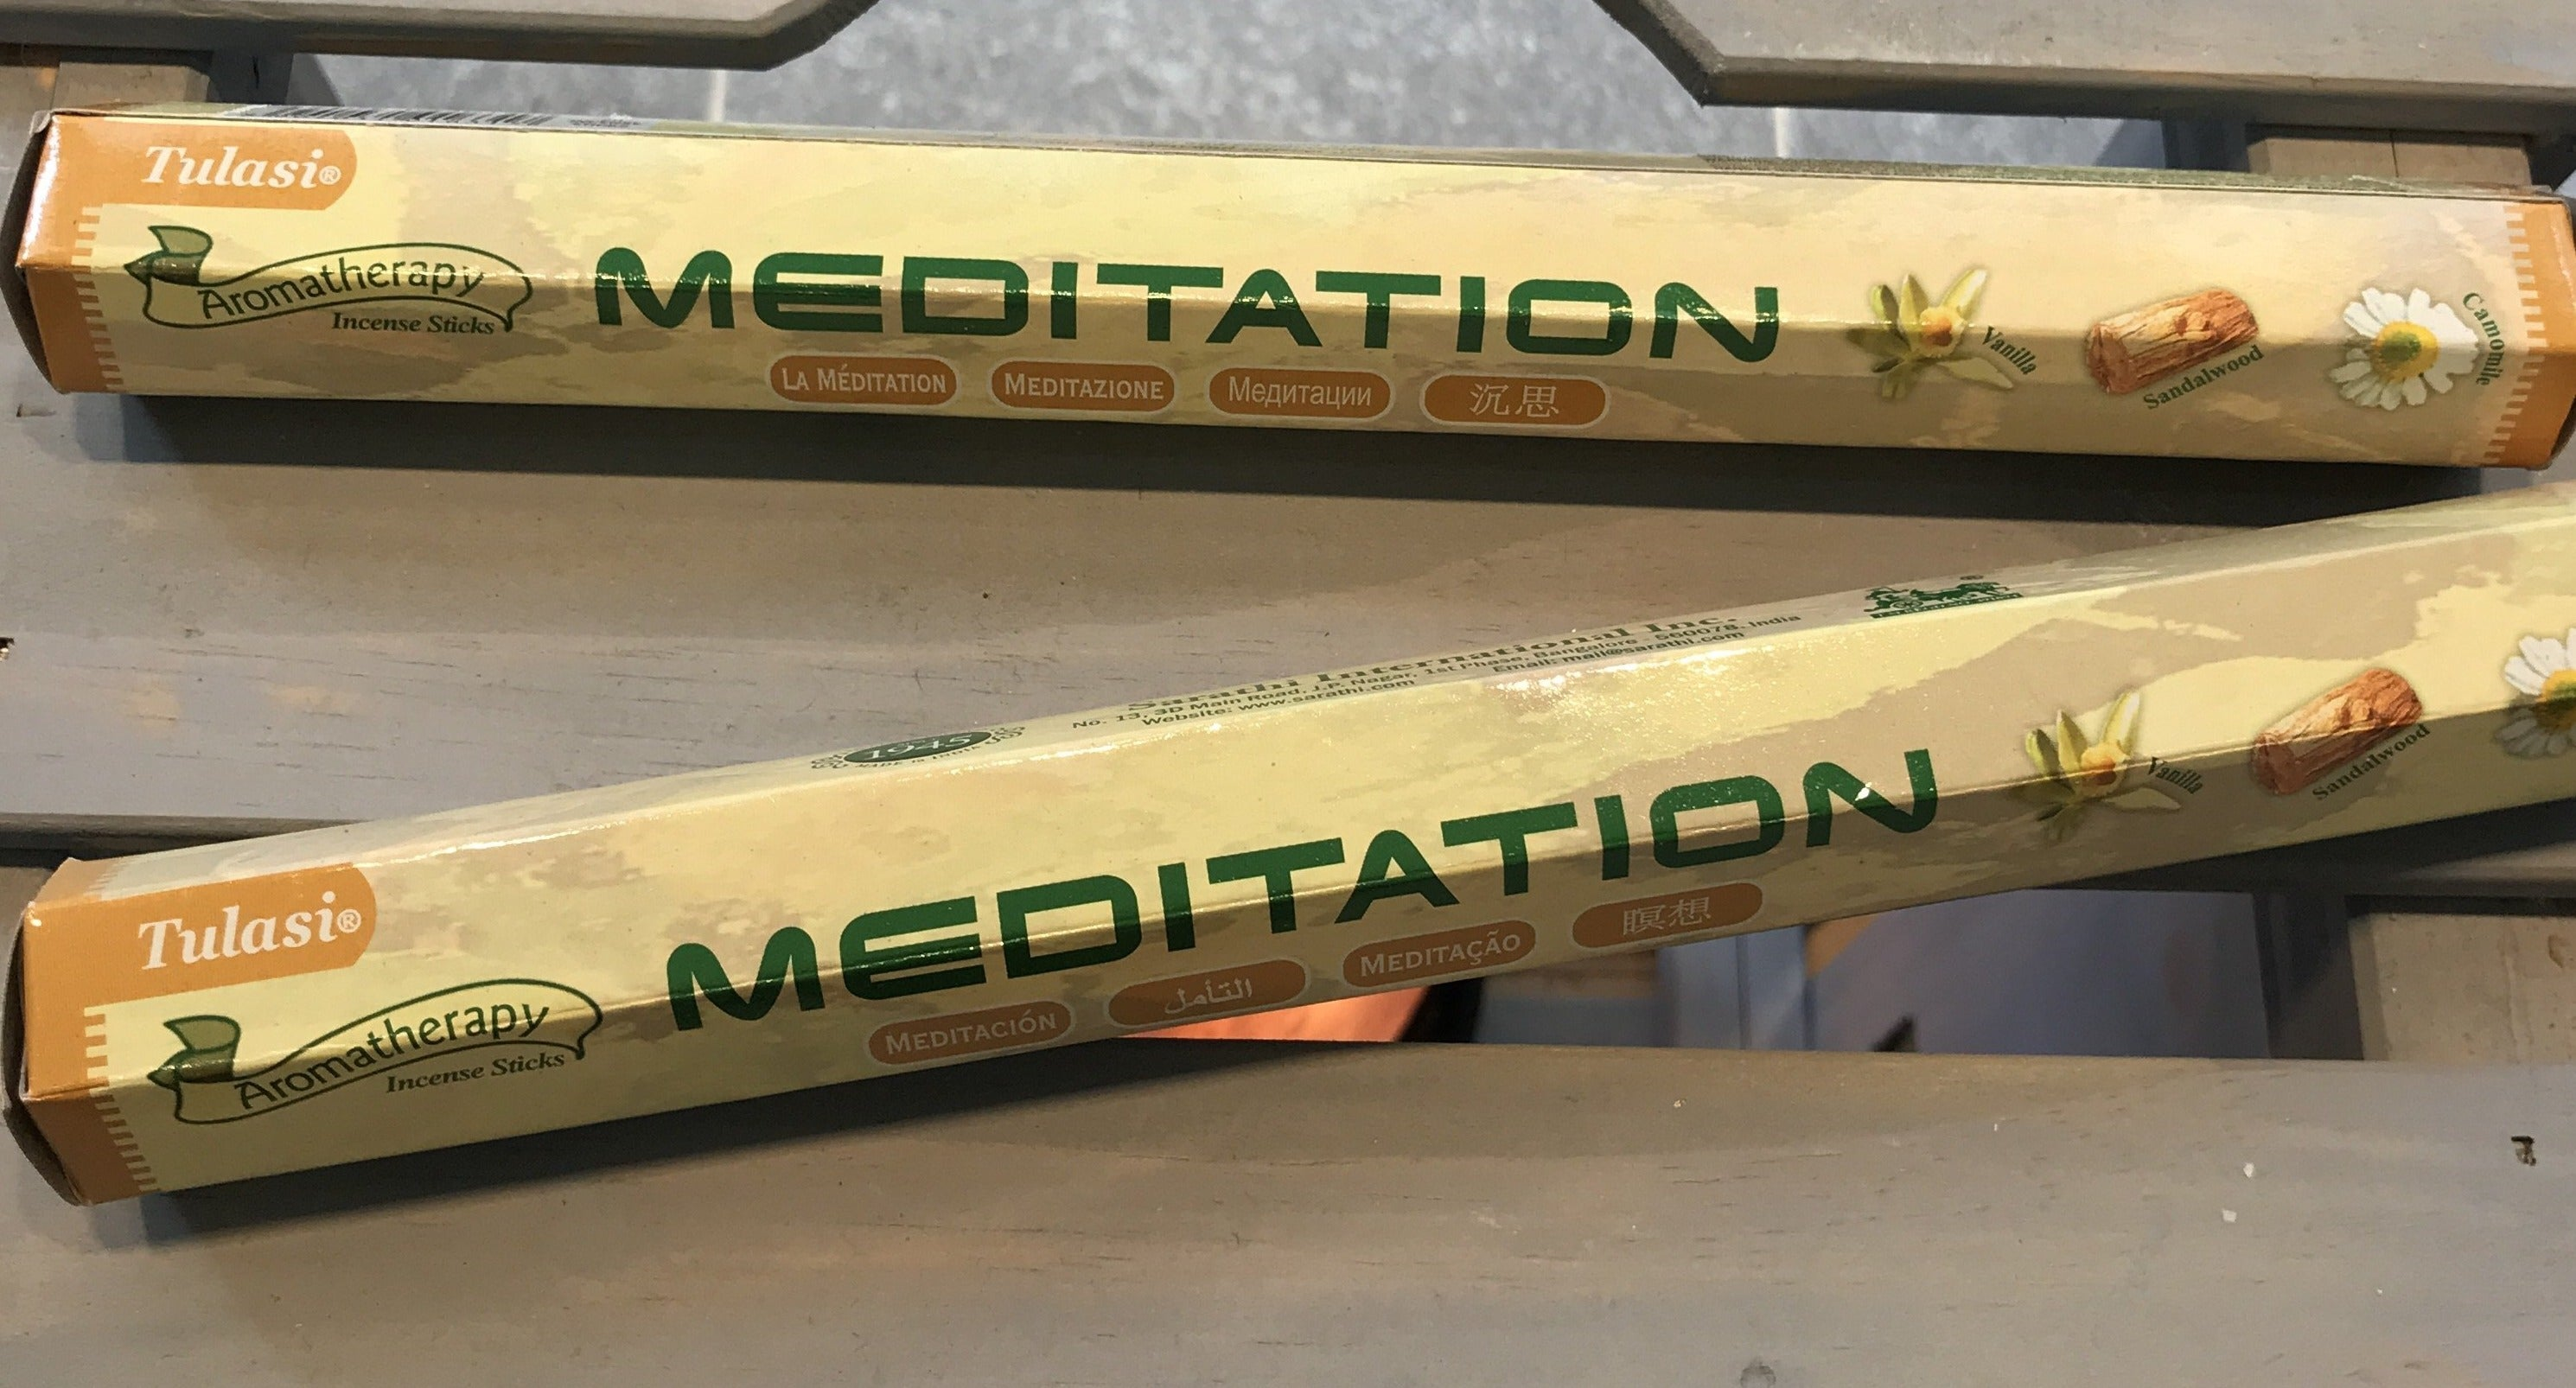 Tulasi Meditation (8 / 20 sticks)